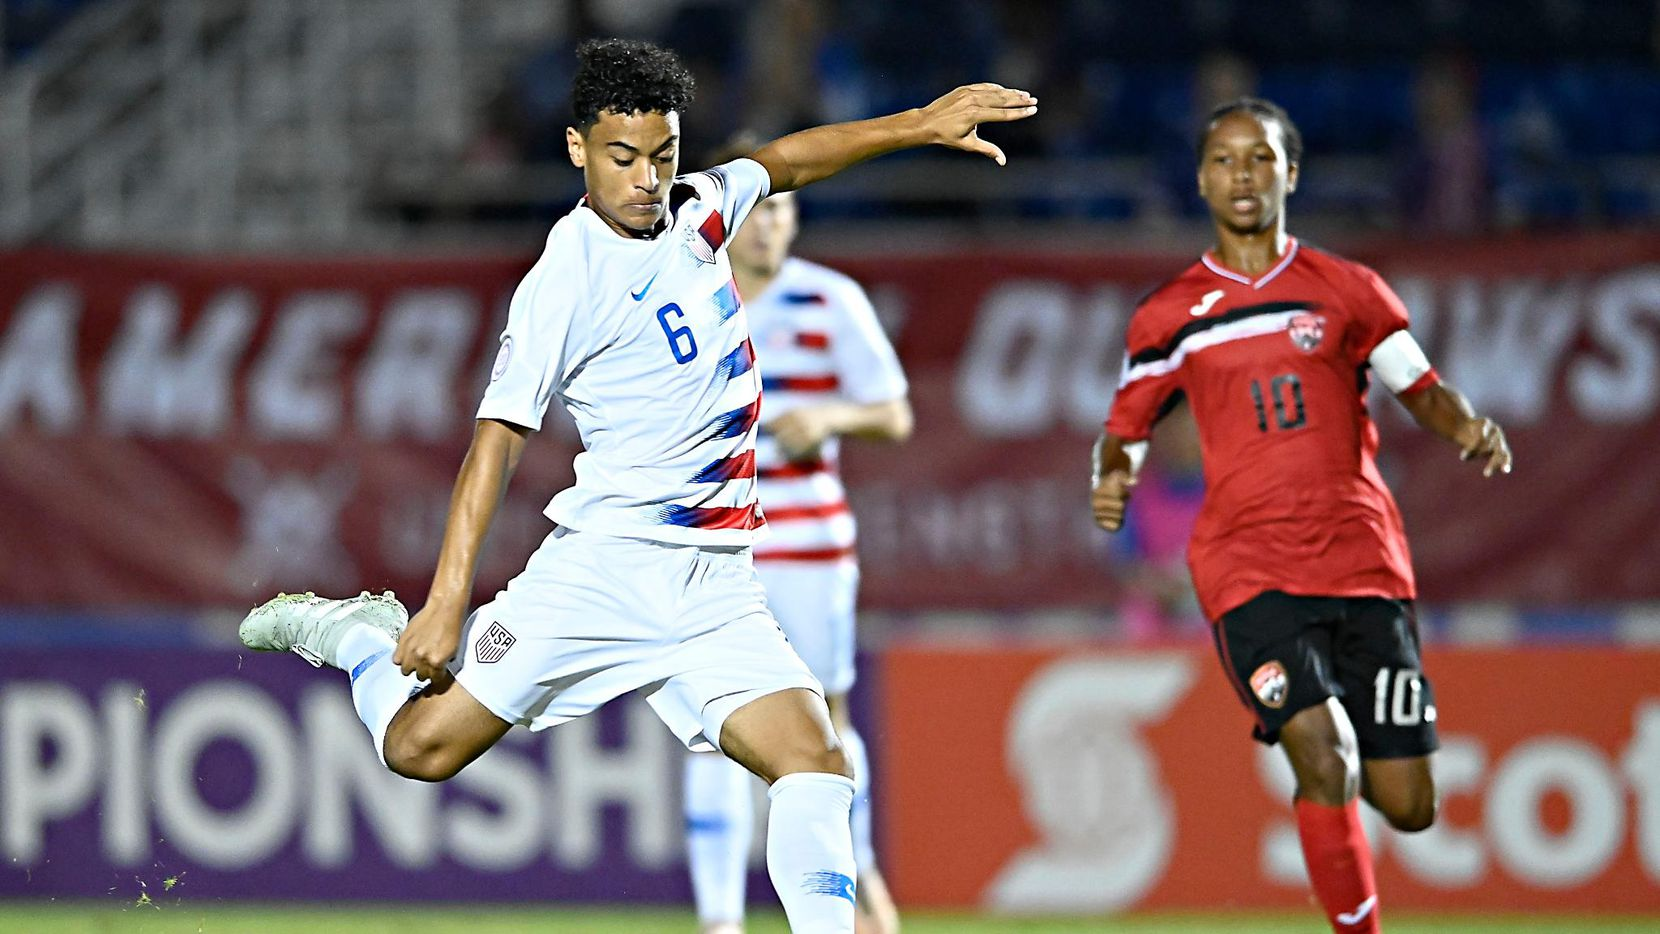 Brandon Servania of FC Dallas playing in the 2018 Concacaf U20 Championship against Trinidad and Tobago.